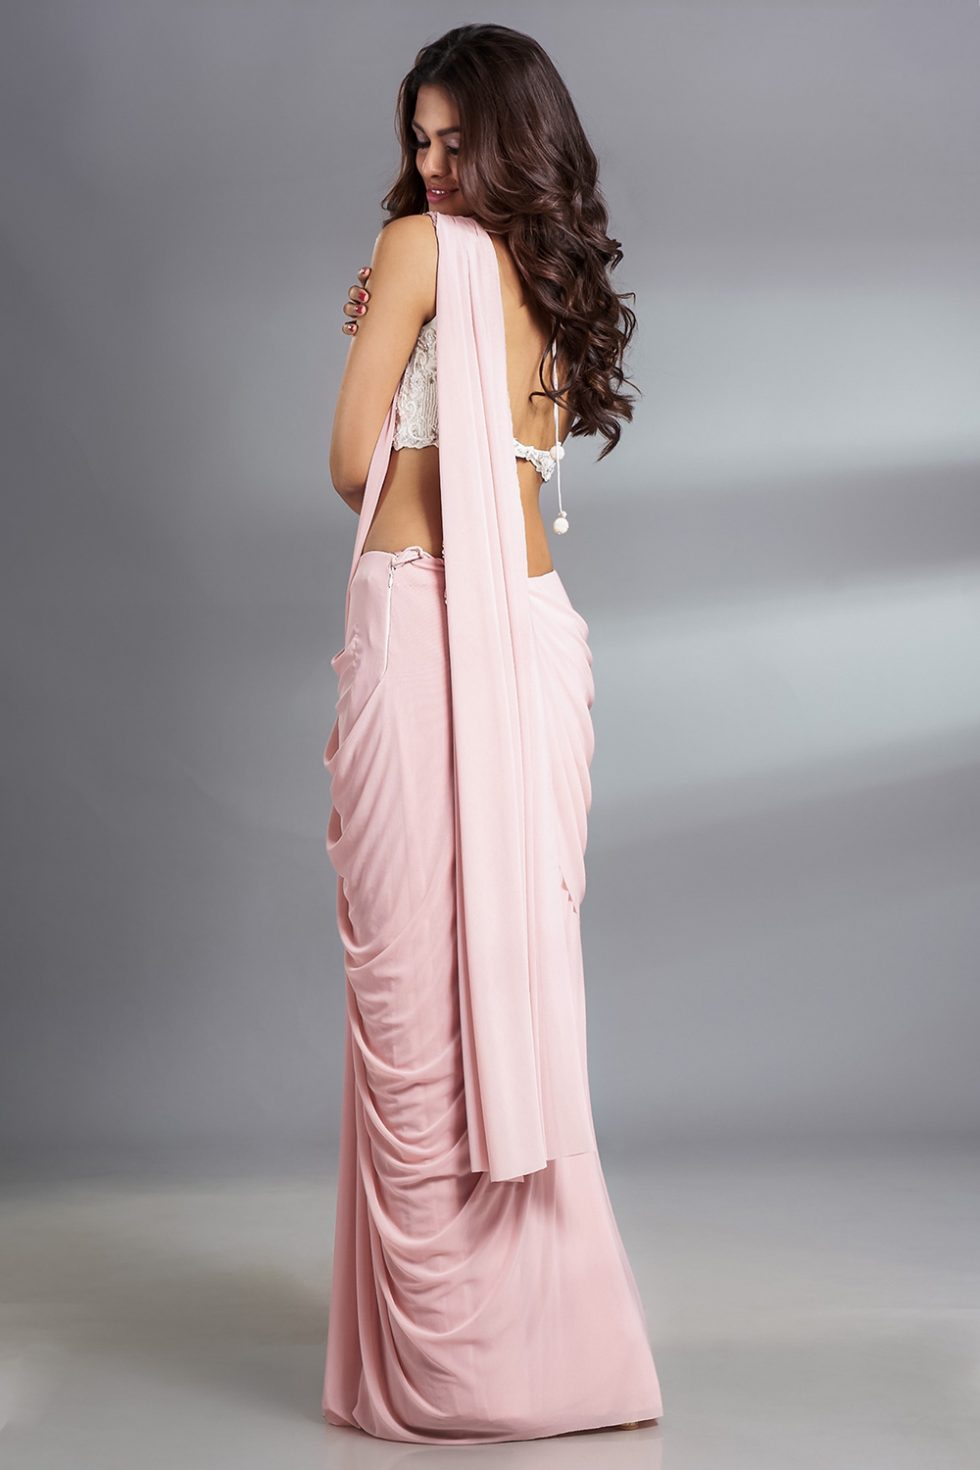 Baby pink pre stitched draped saree and ivory white hand embroidered blouse with a matching broach and tassels.